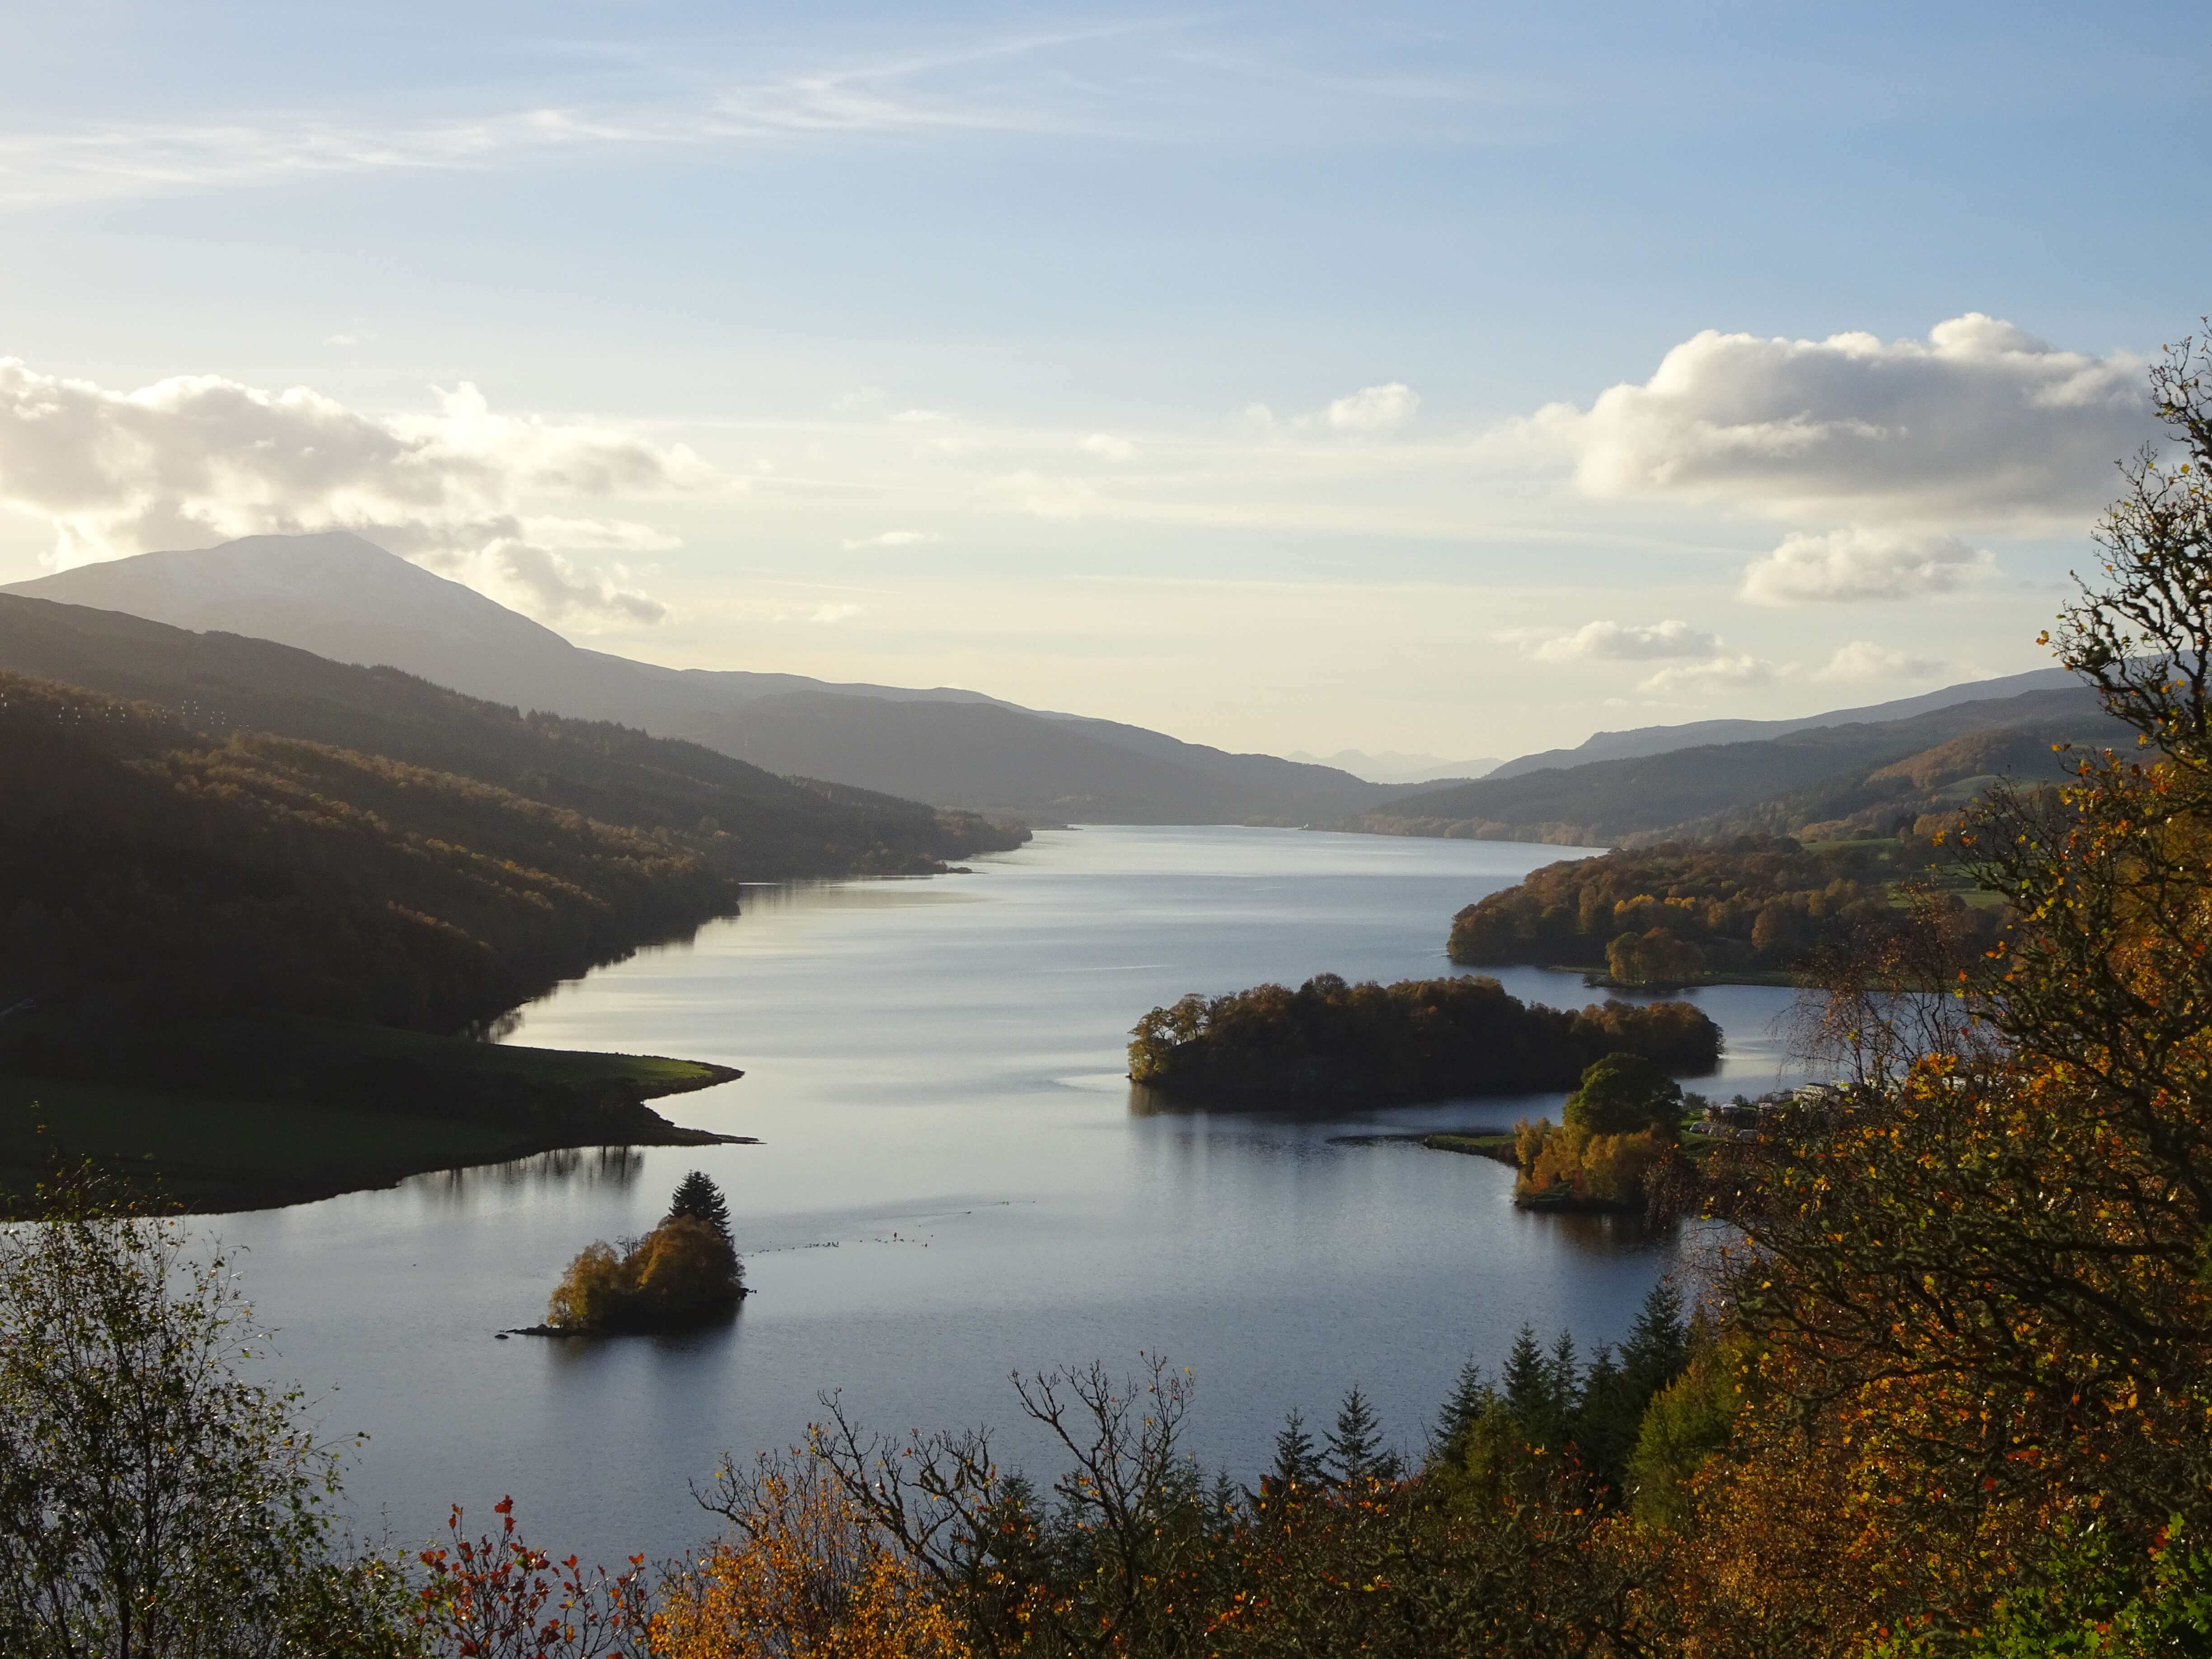 Queen's View Pitlochry Perthshire